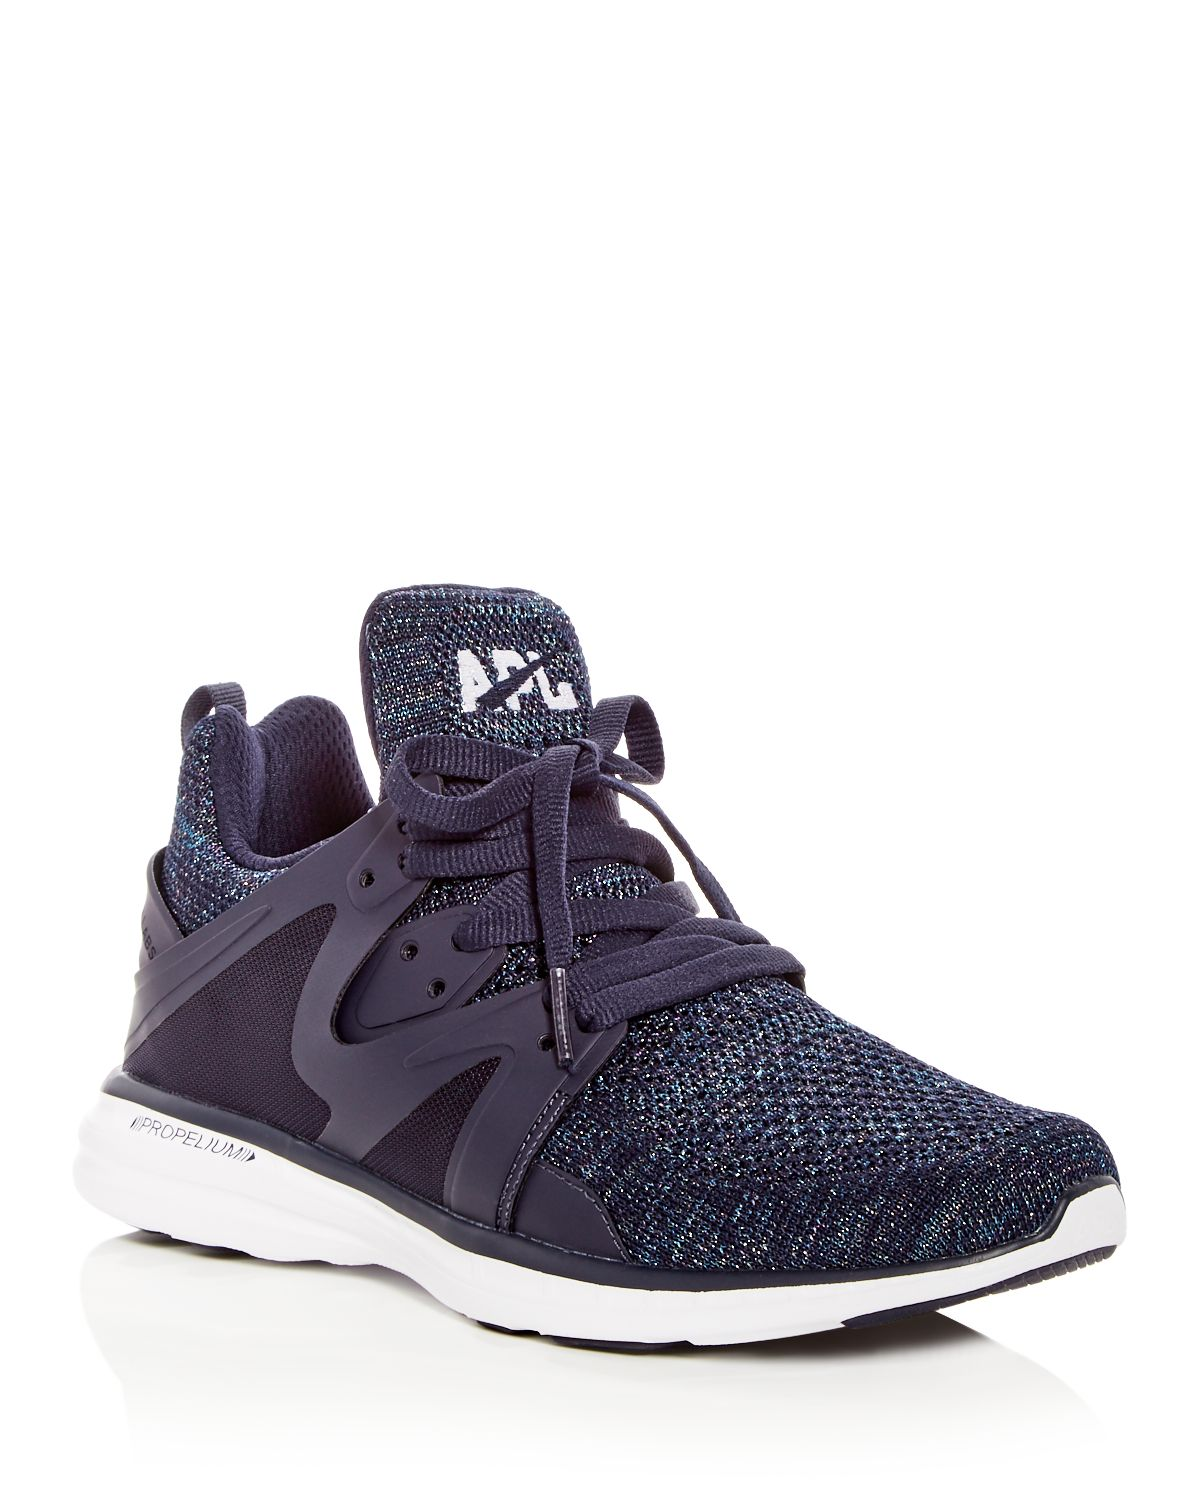 APL Athletic Propulsion Labs Women's Ascend Knit Lace Up Sneakers